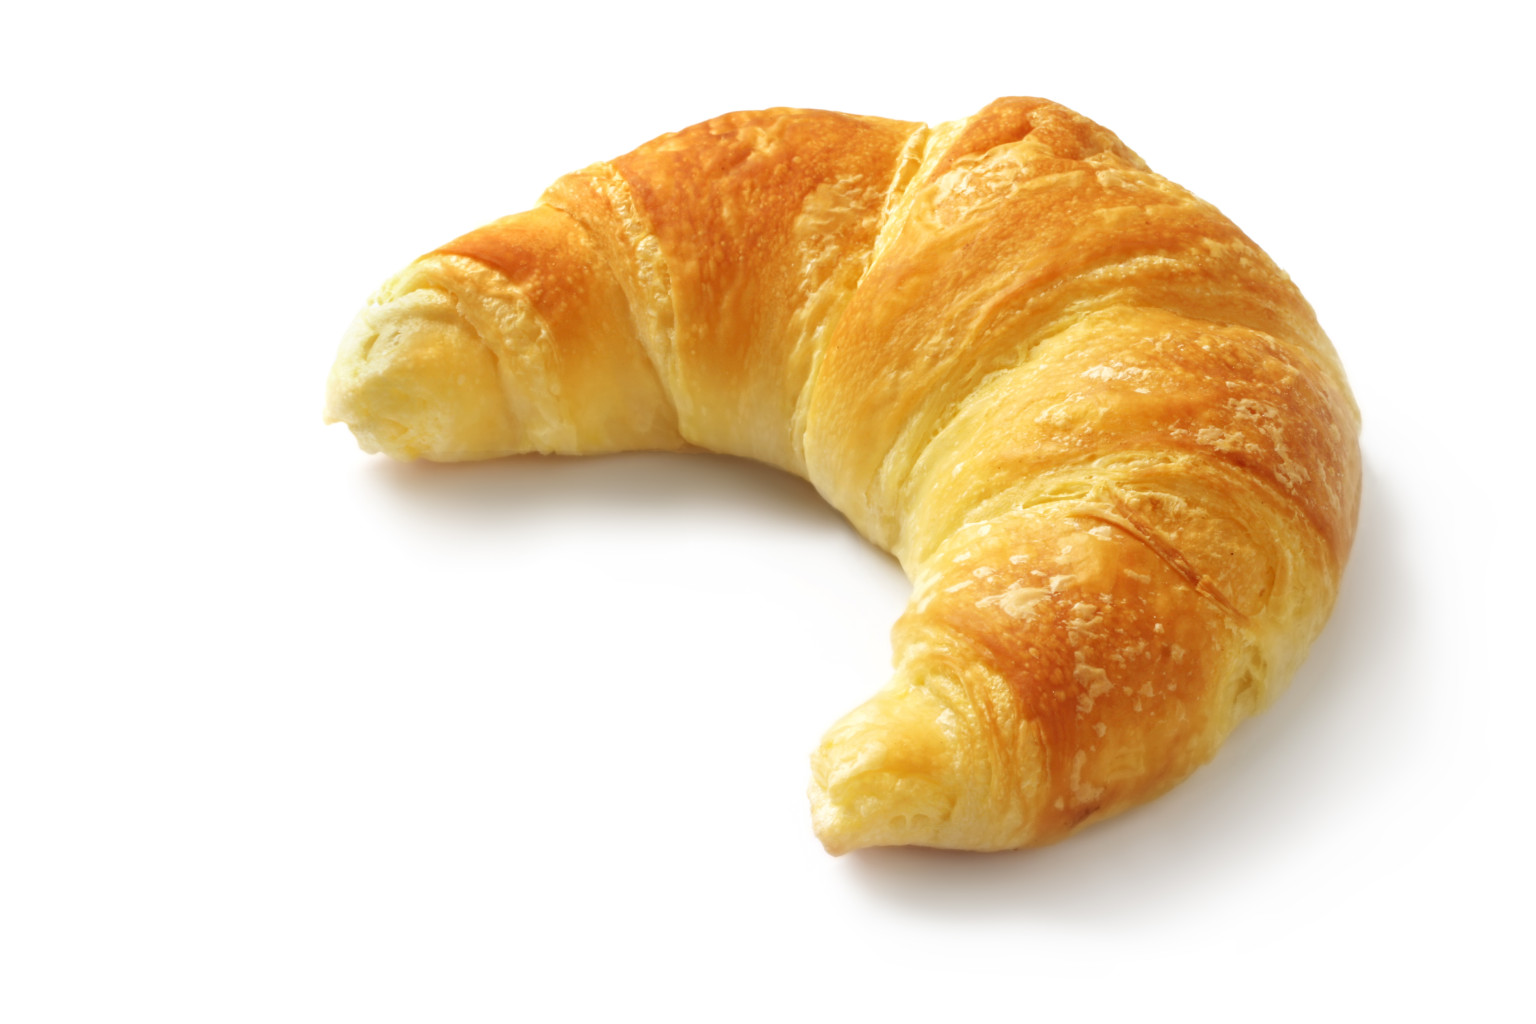 Fatwa On Croissants As Syrian Sharia Rebels Denounce 'Colonial' Pastr...